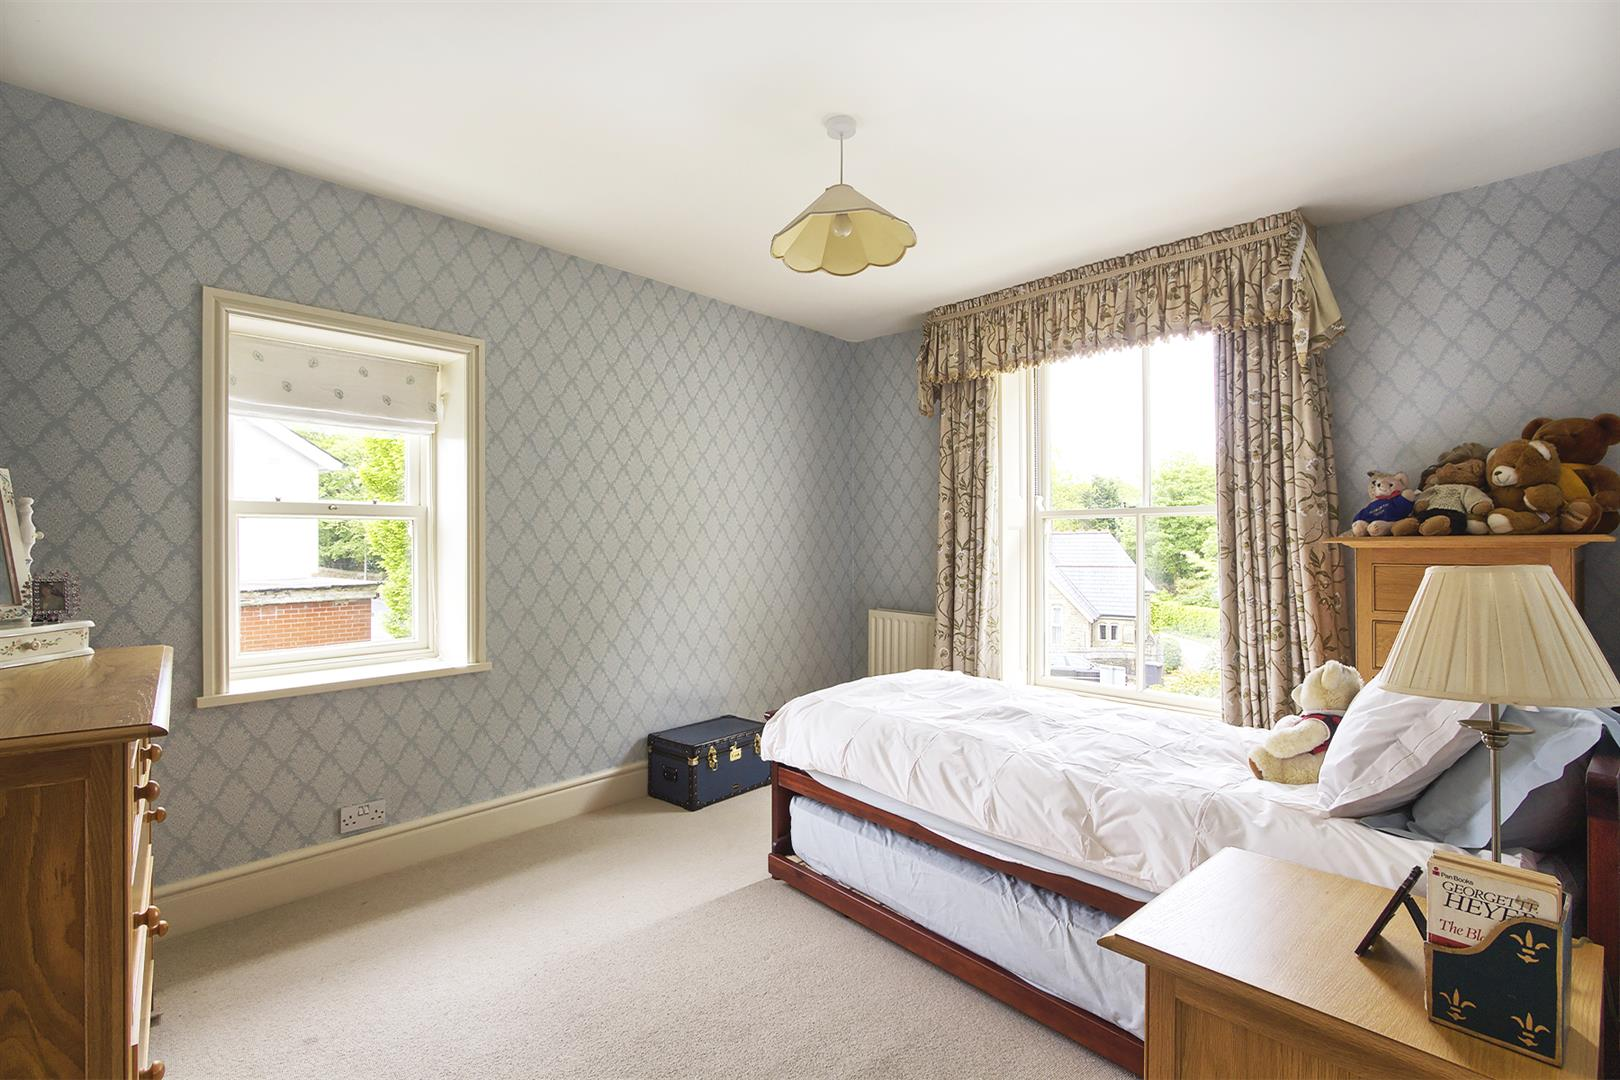 5 bedroom detached house For Sale in Bolton - bed 3.png.